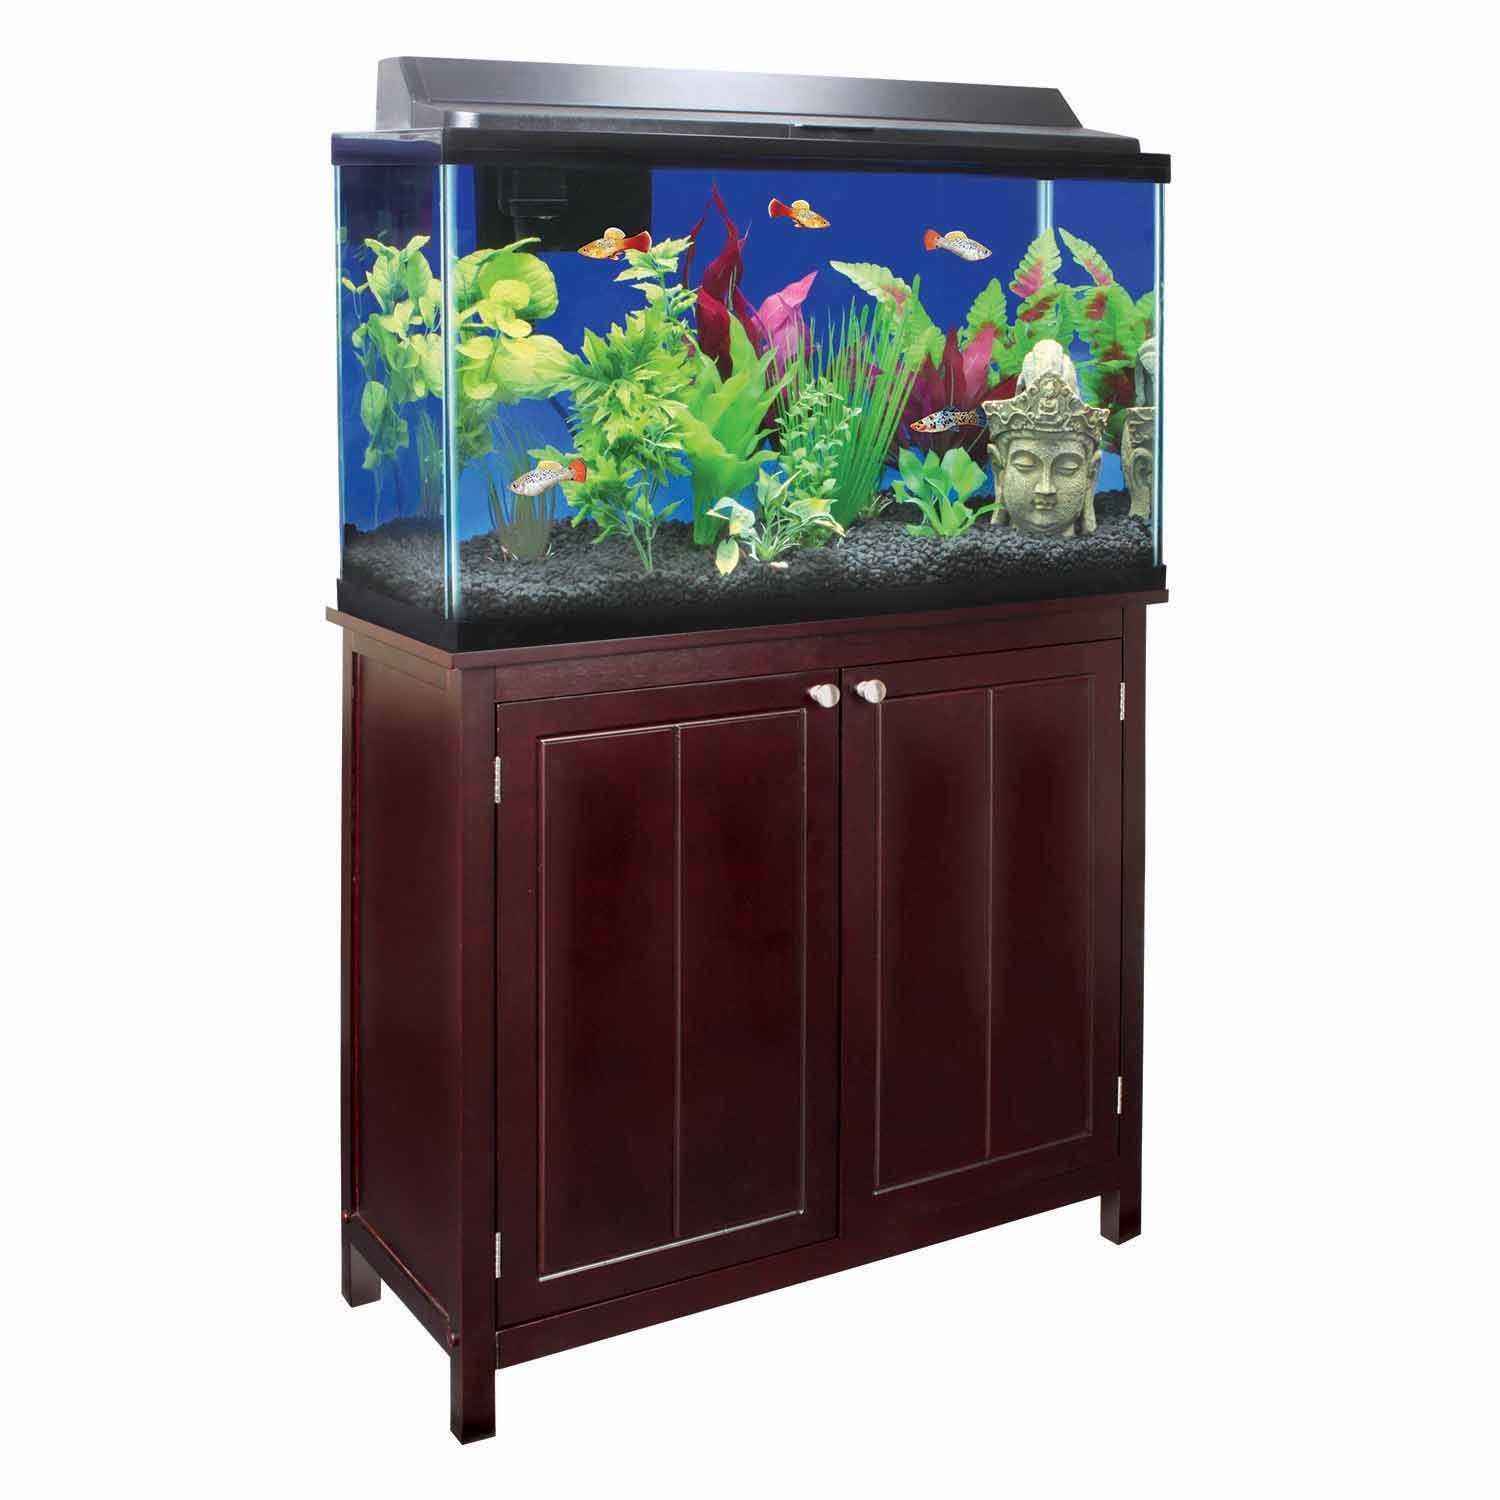 Imagitarium Preferred Winston Tank Stand for 29 gallon fish tank